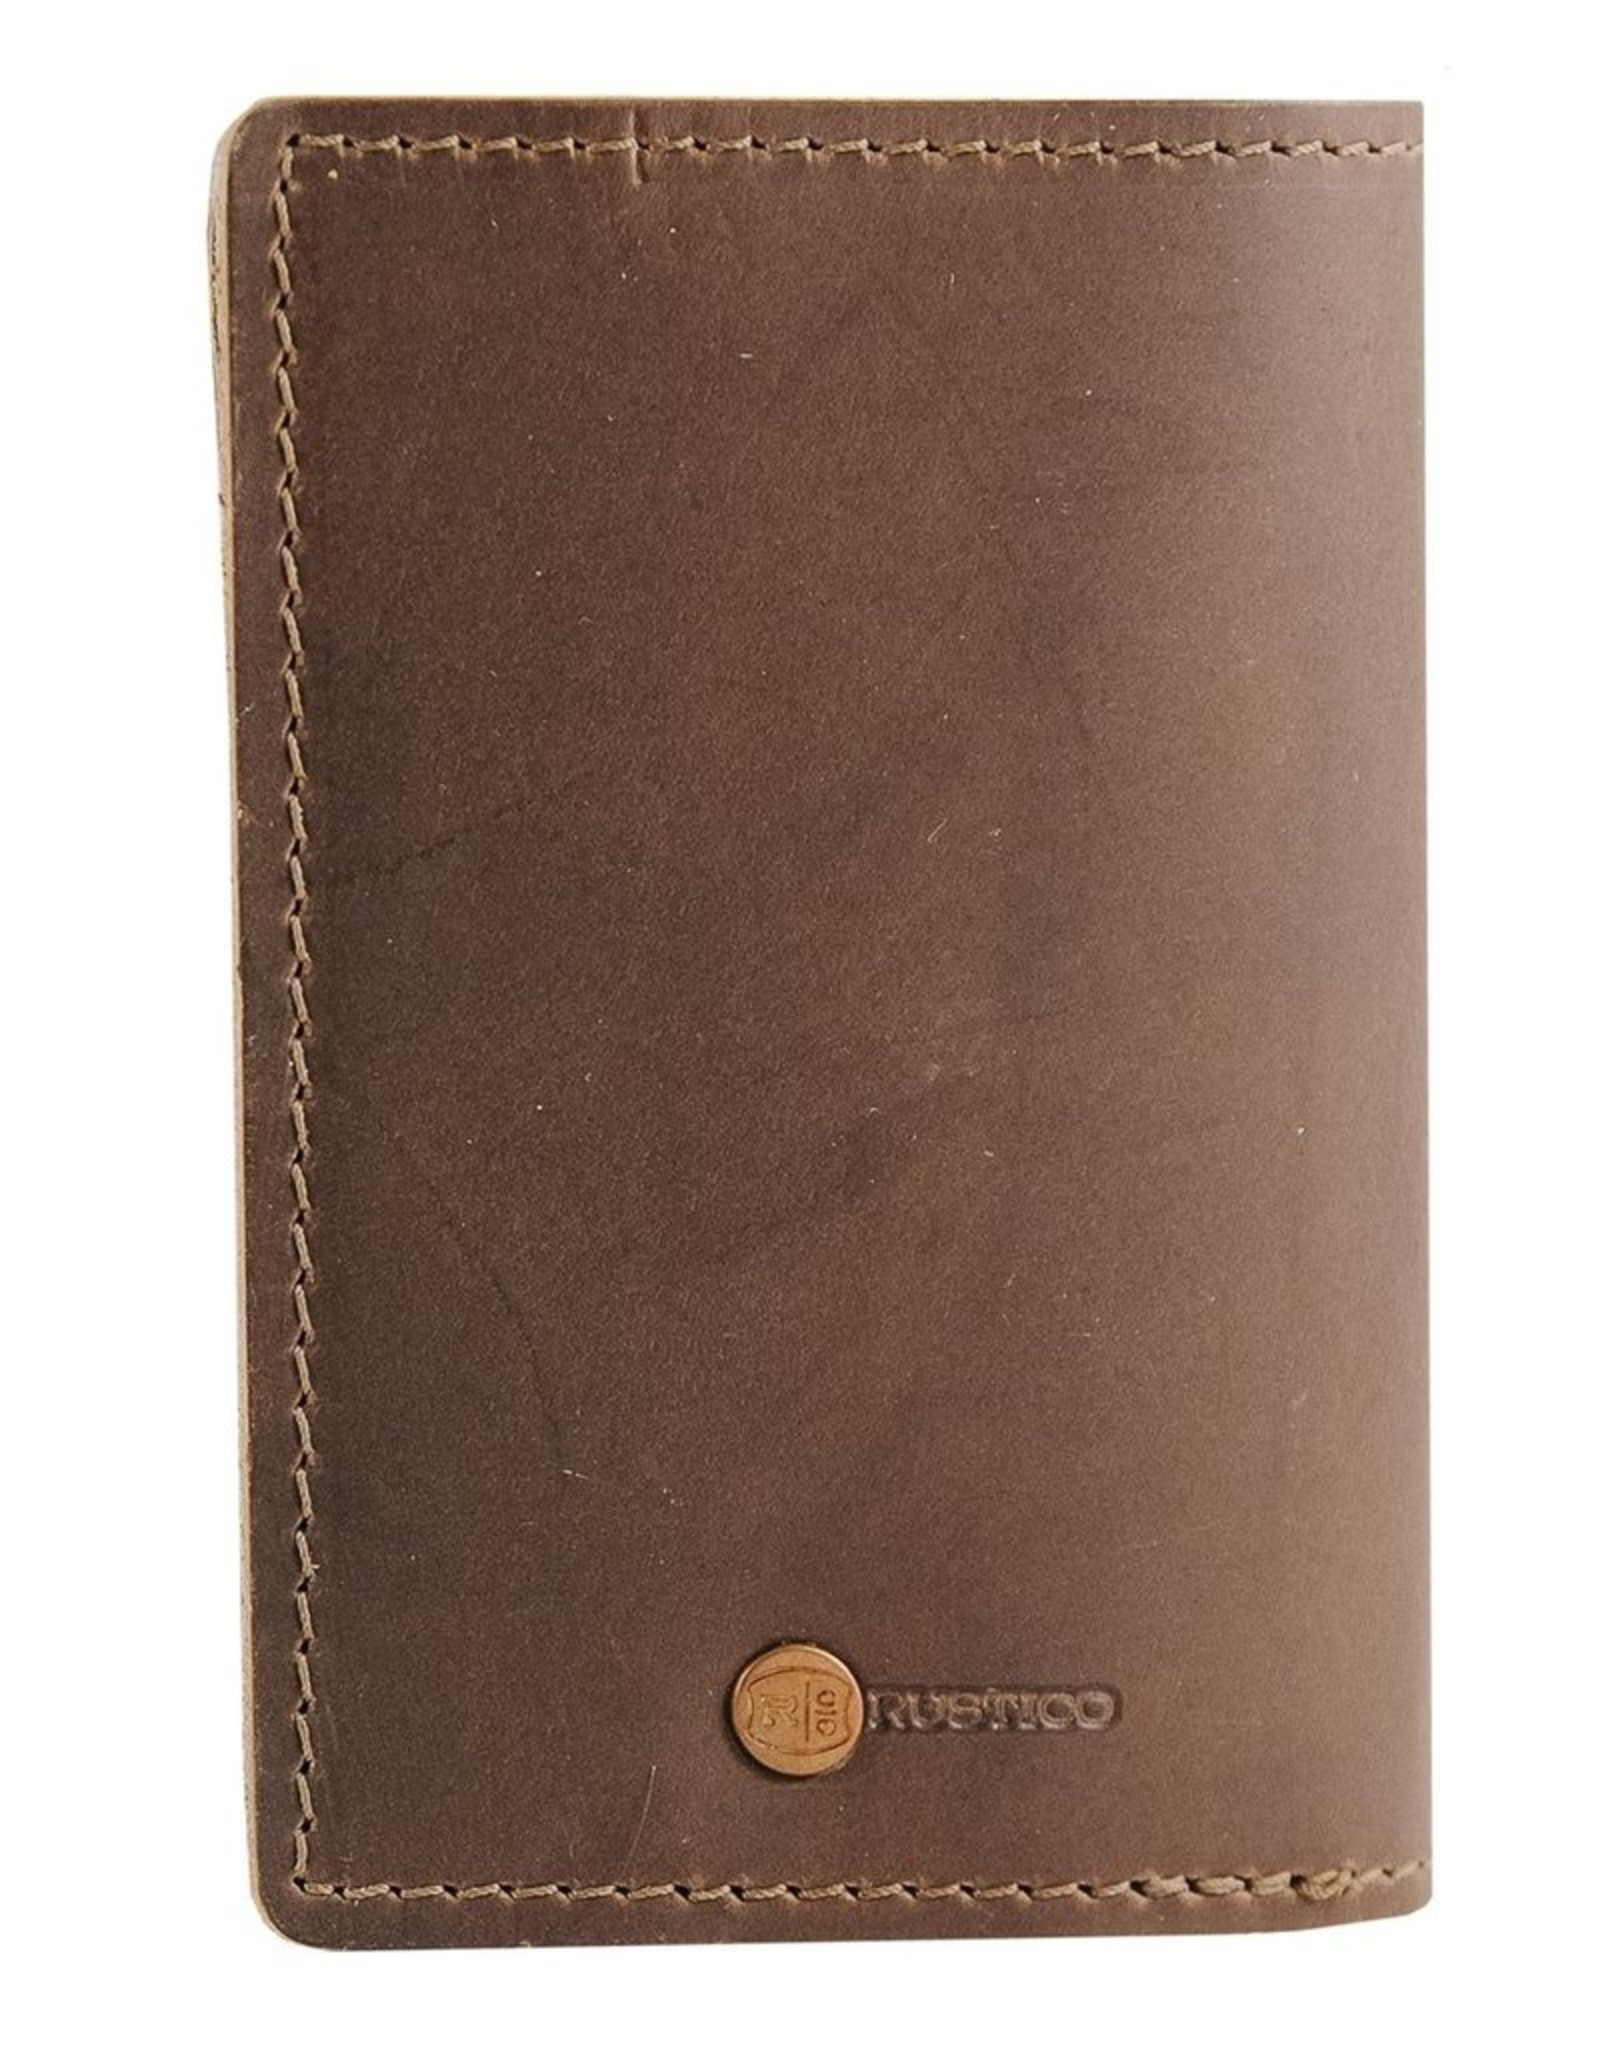 Rustico Leather Passport Covers by Rustico